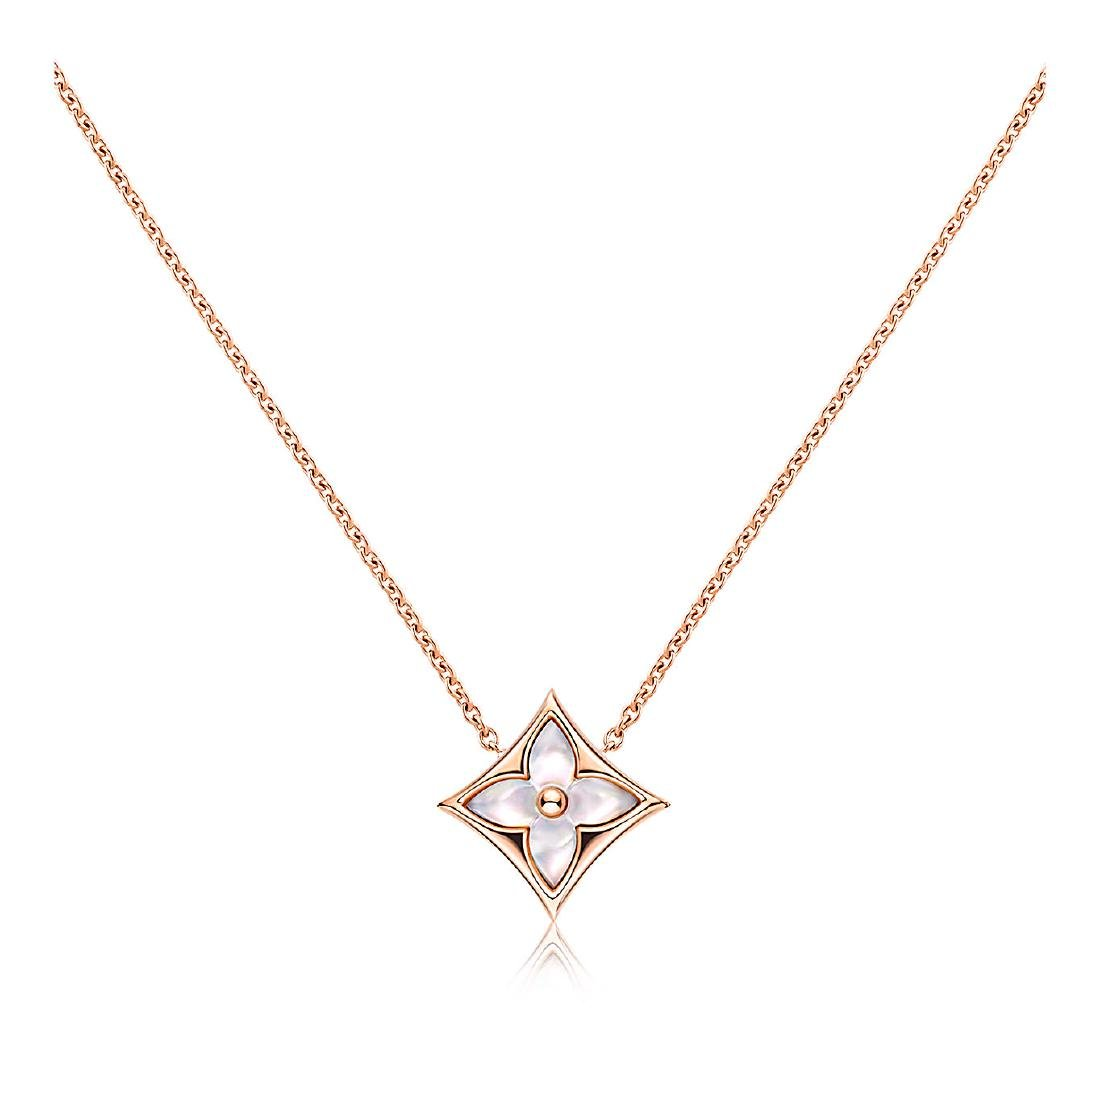 LOUIS VUITTON 18K ROSE GOLD MOTHER OF PEARL PENDANT